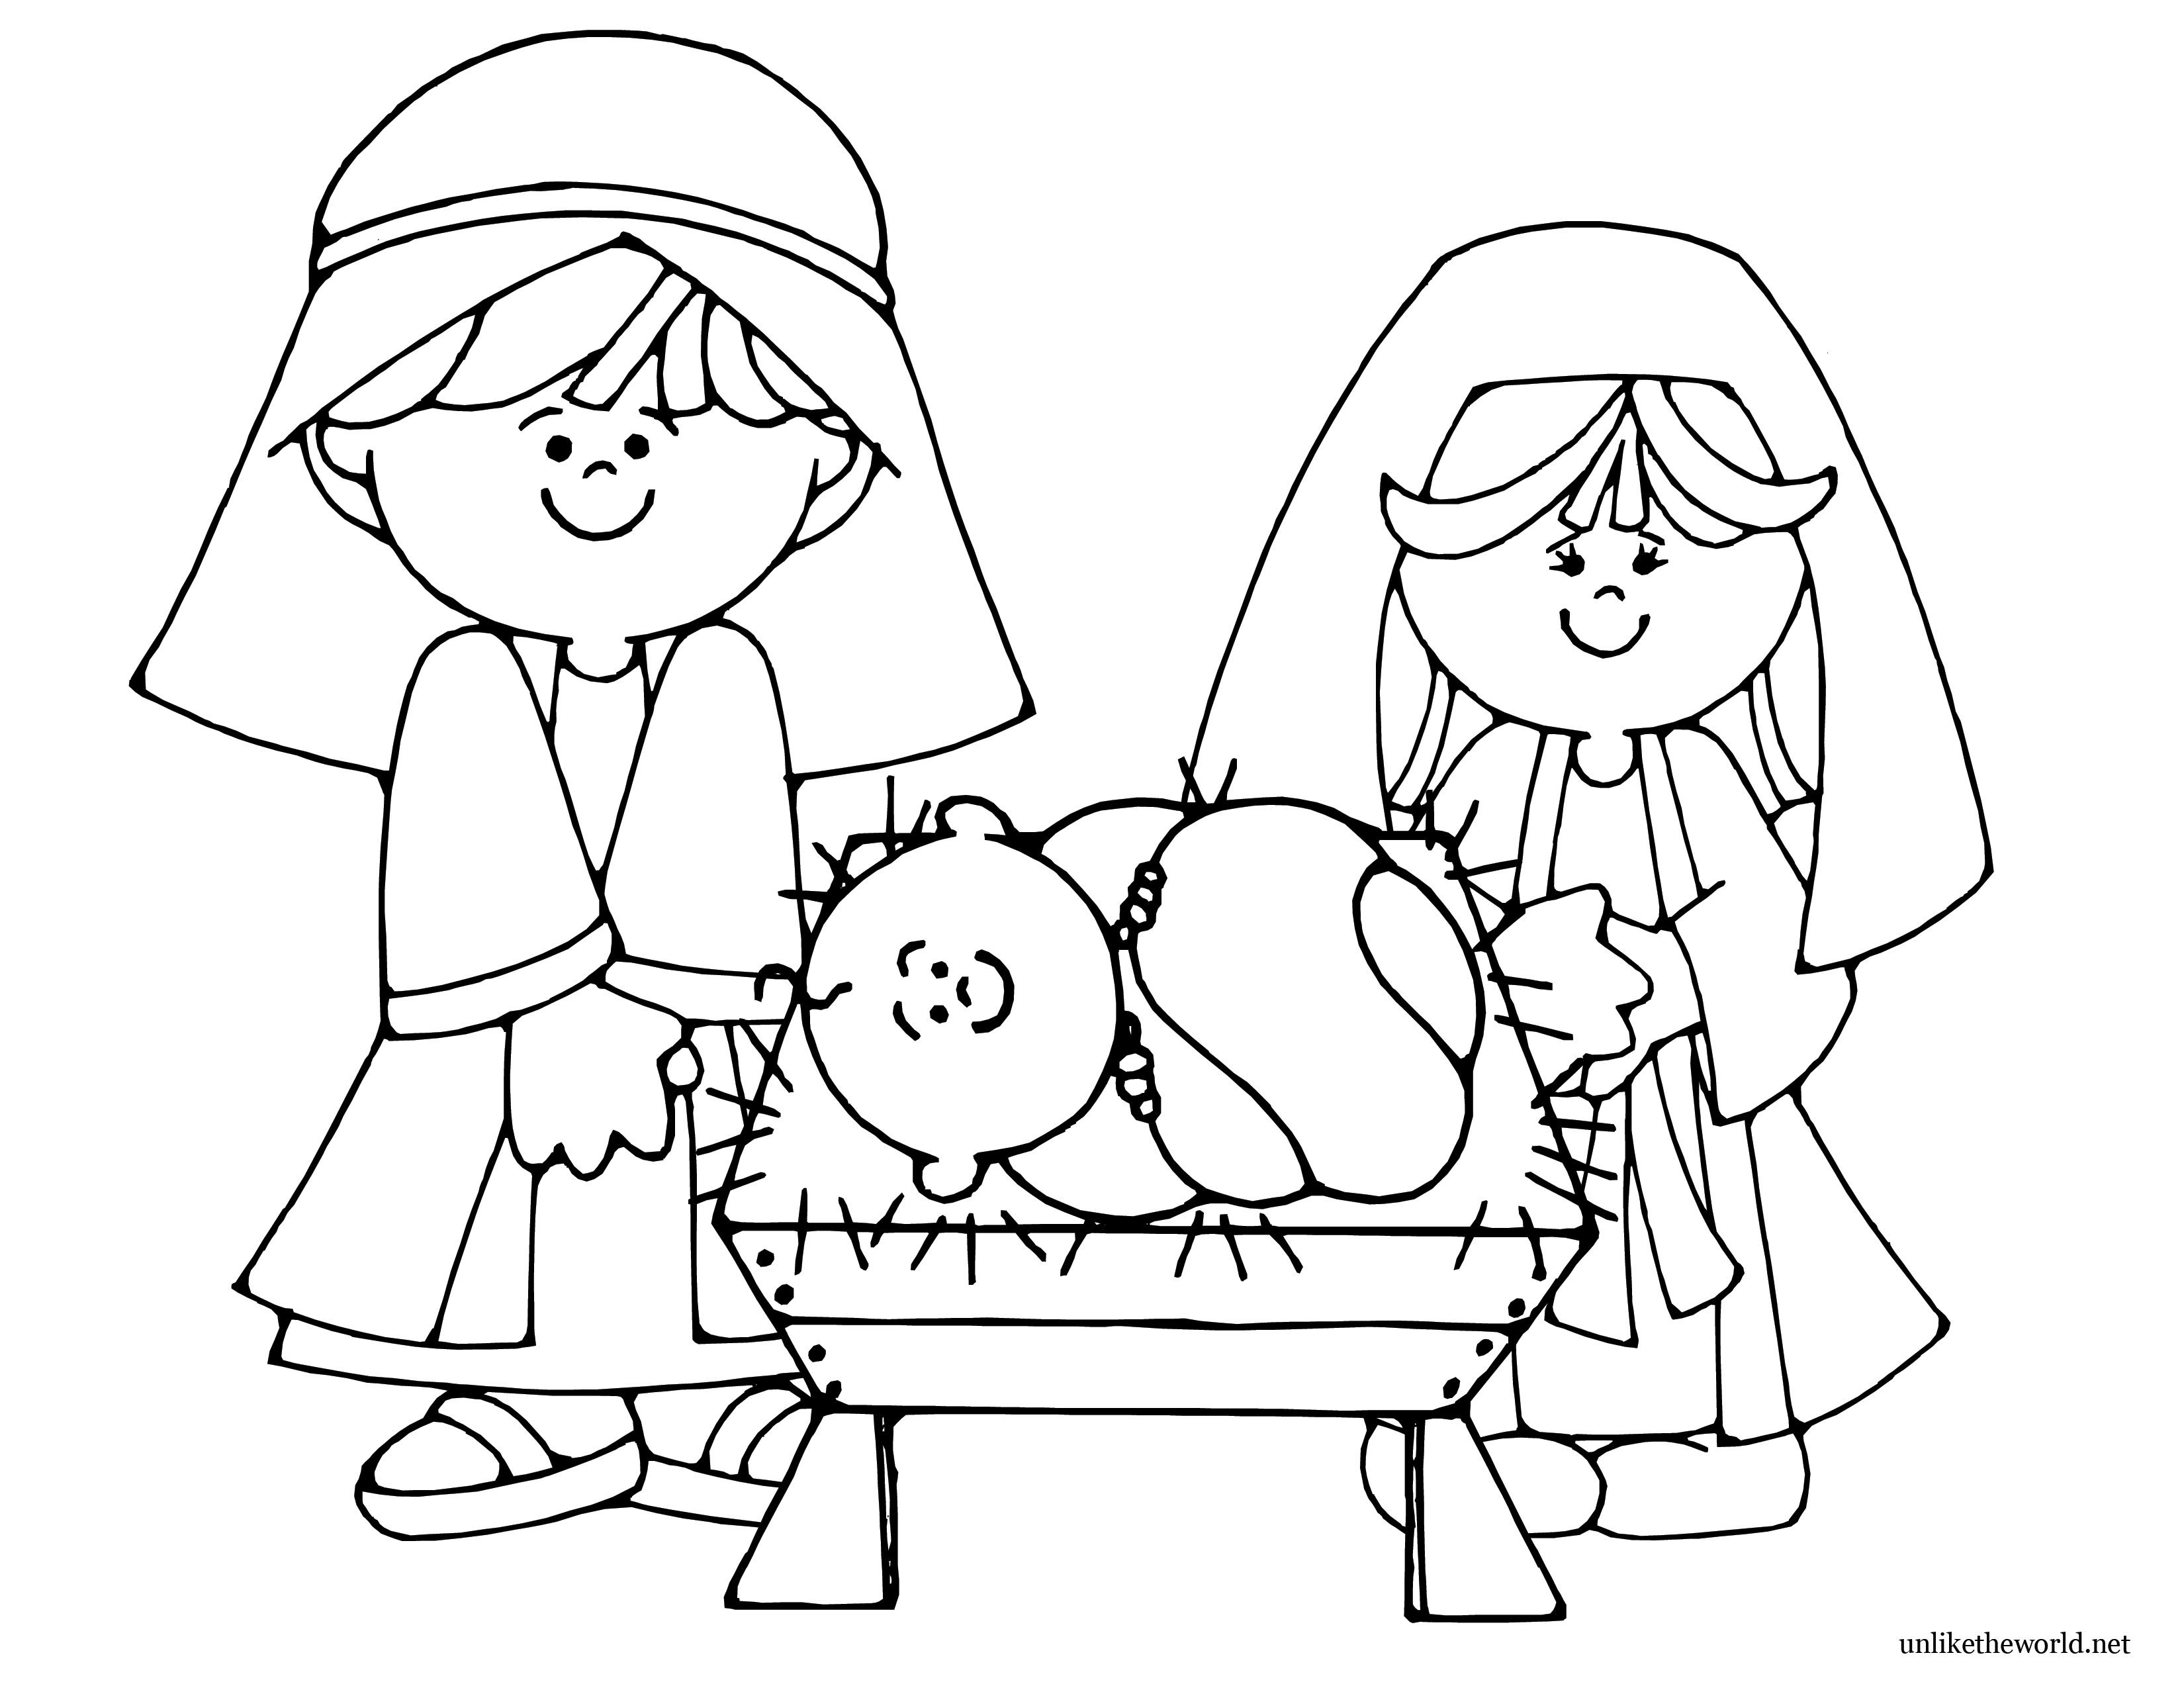 Coloring Pages ~ Thehristmas Storyoloring Pages Baby Jesus In Manger - Free Printable Christmas Baby Jesus Coloring Pages